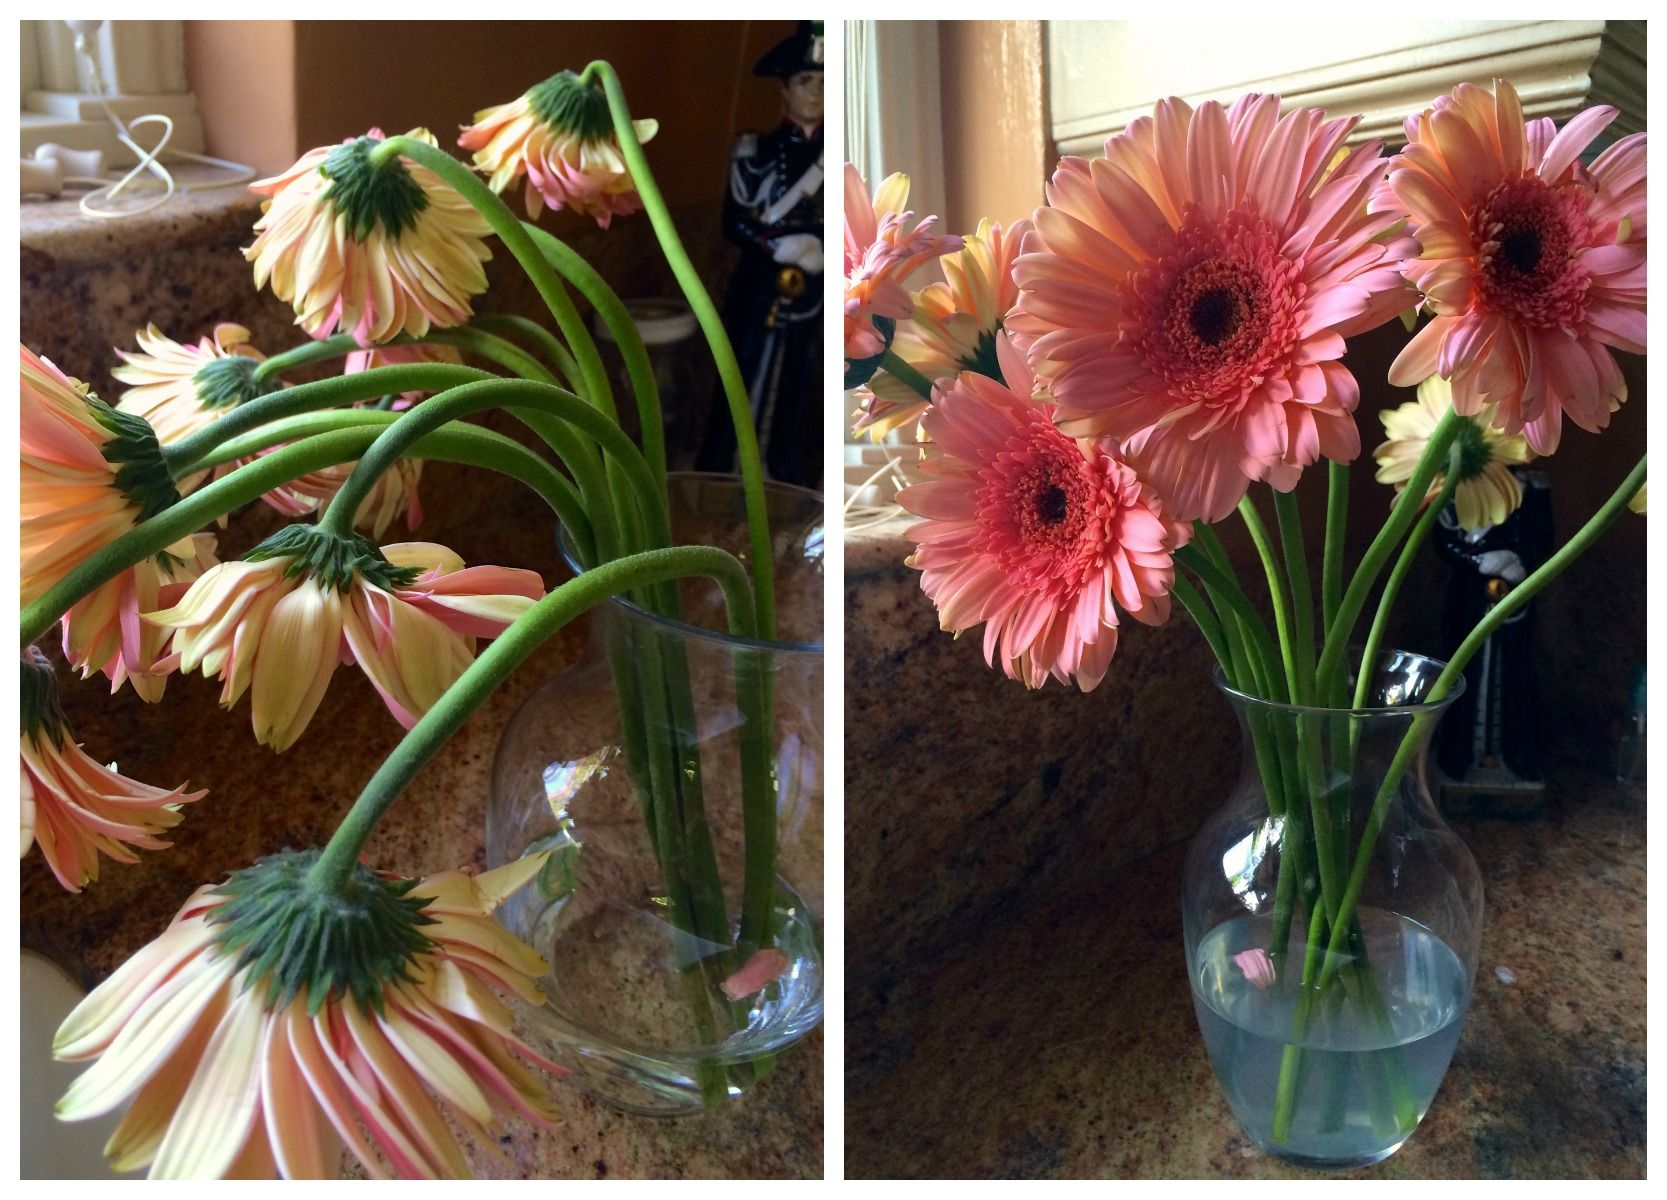 How To Revive Gerbera Daisies Wilted Flowers Gerbera Daisy Gerbera Flower